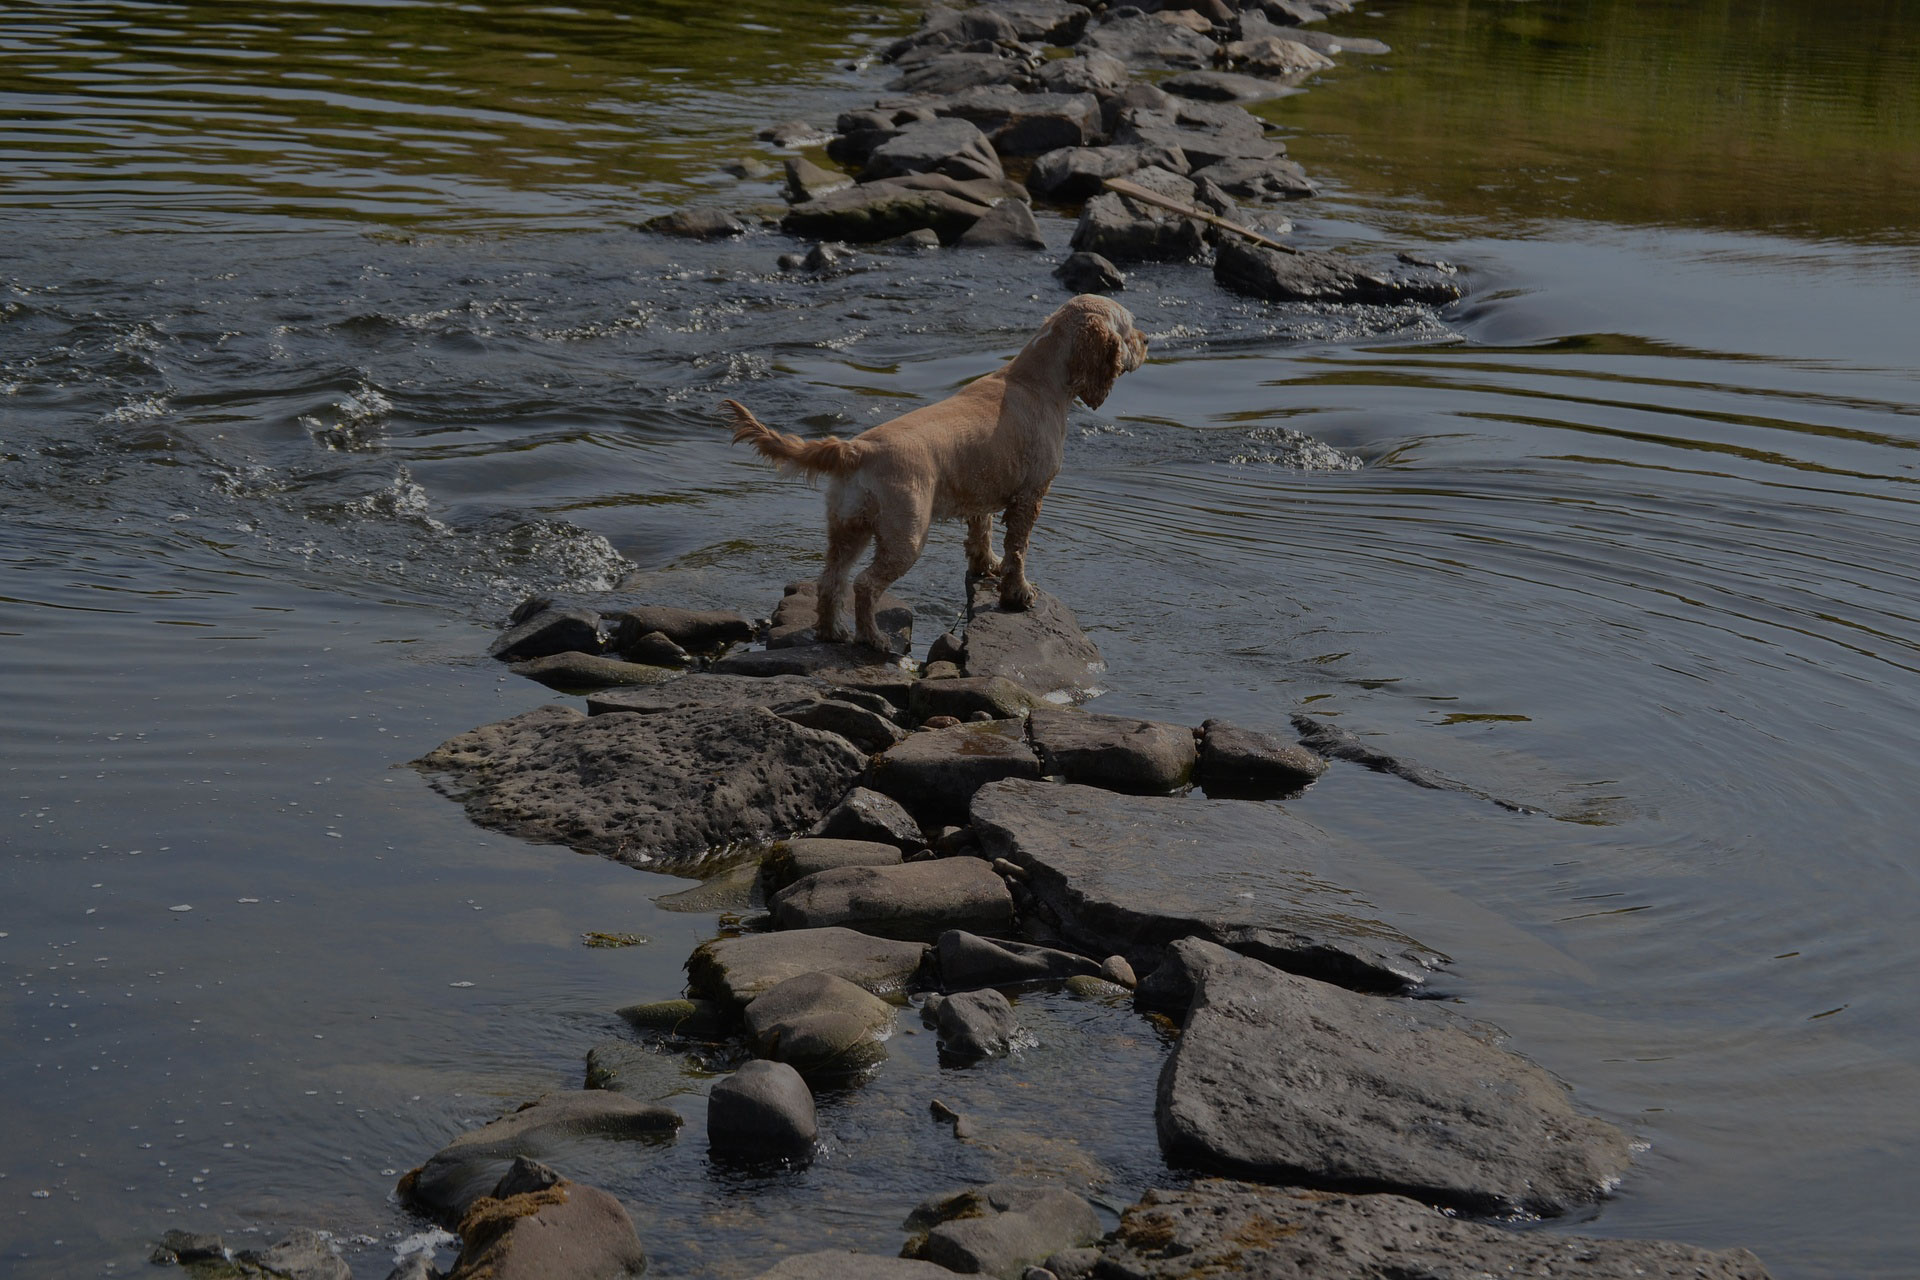 Dog on rocks in the river